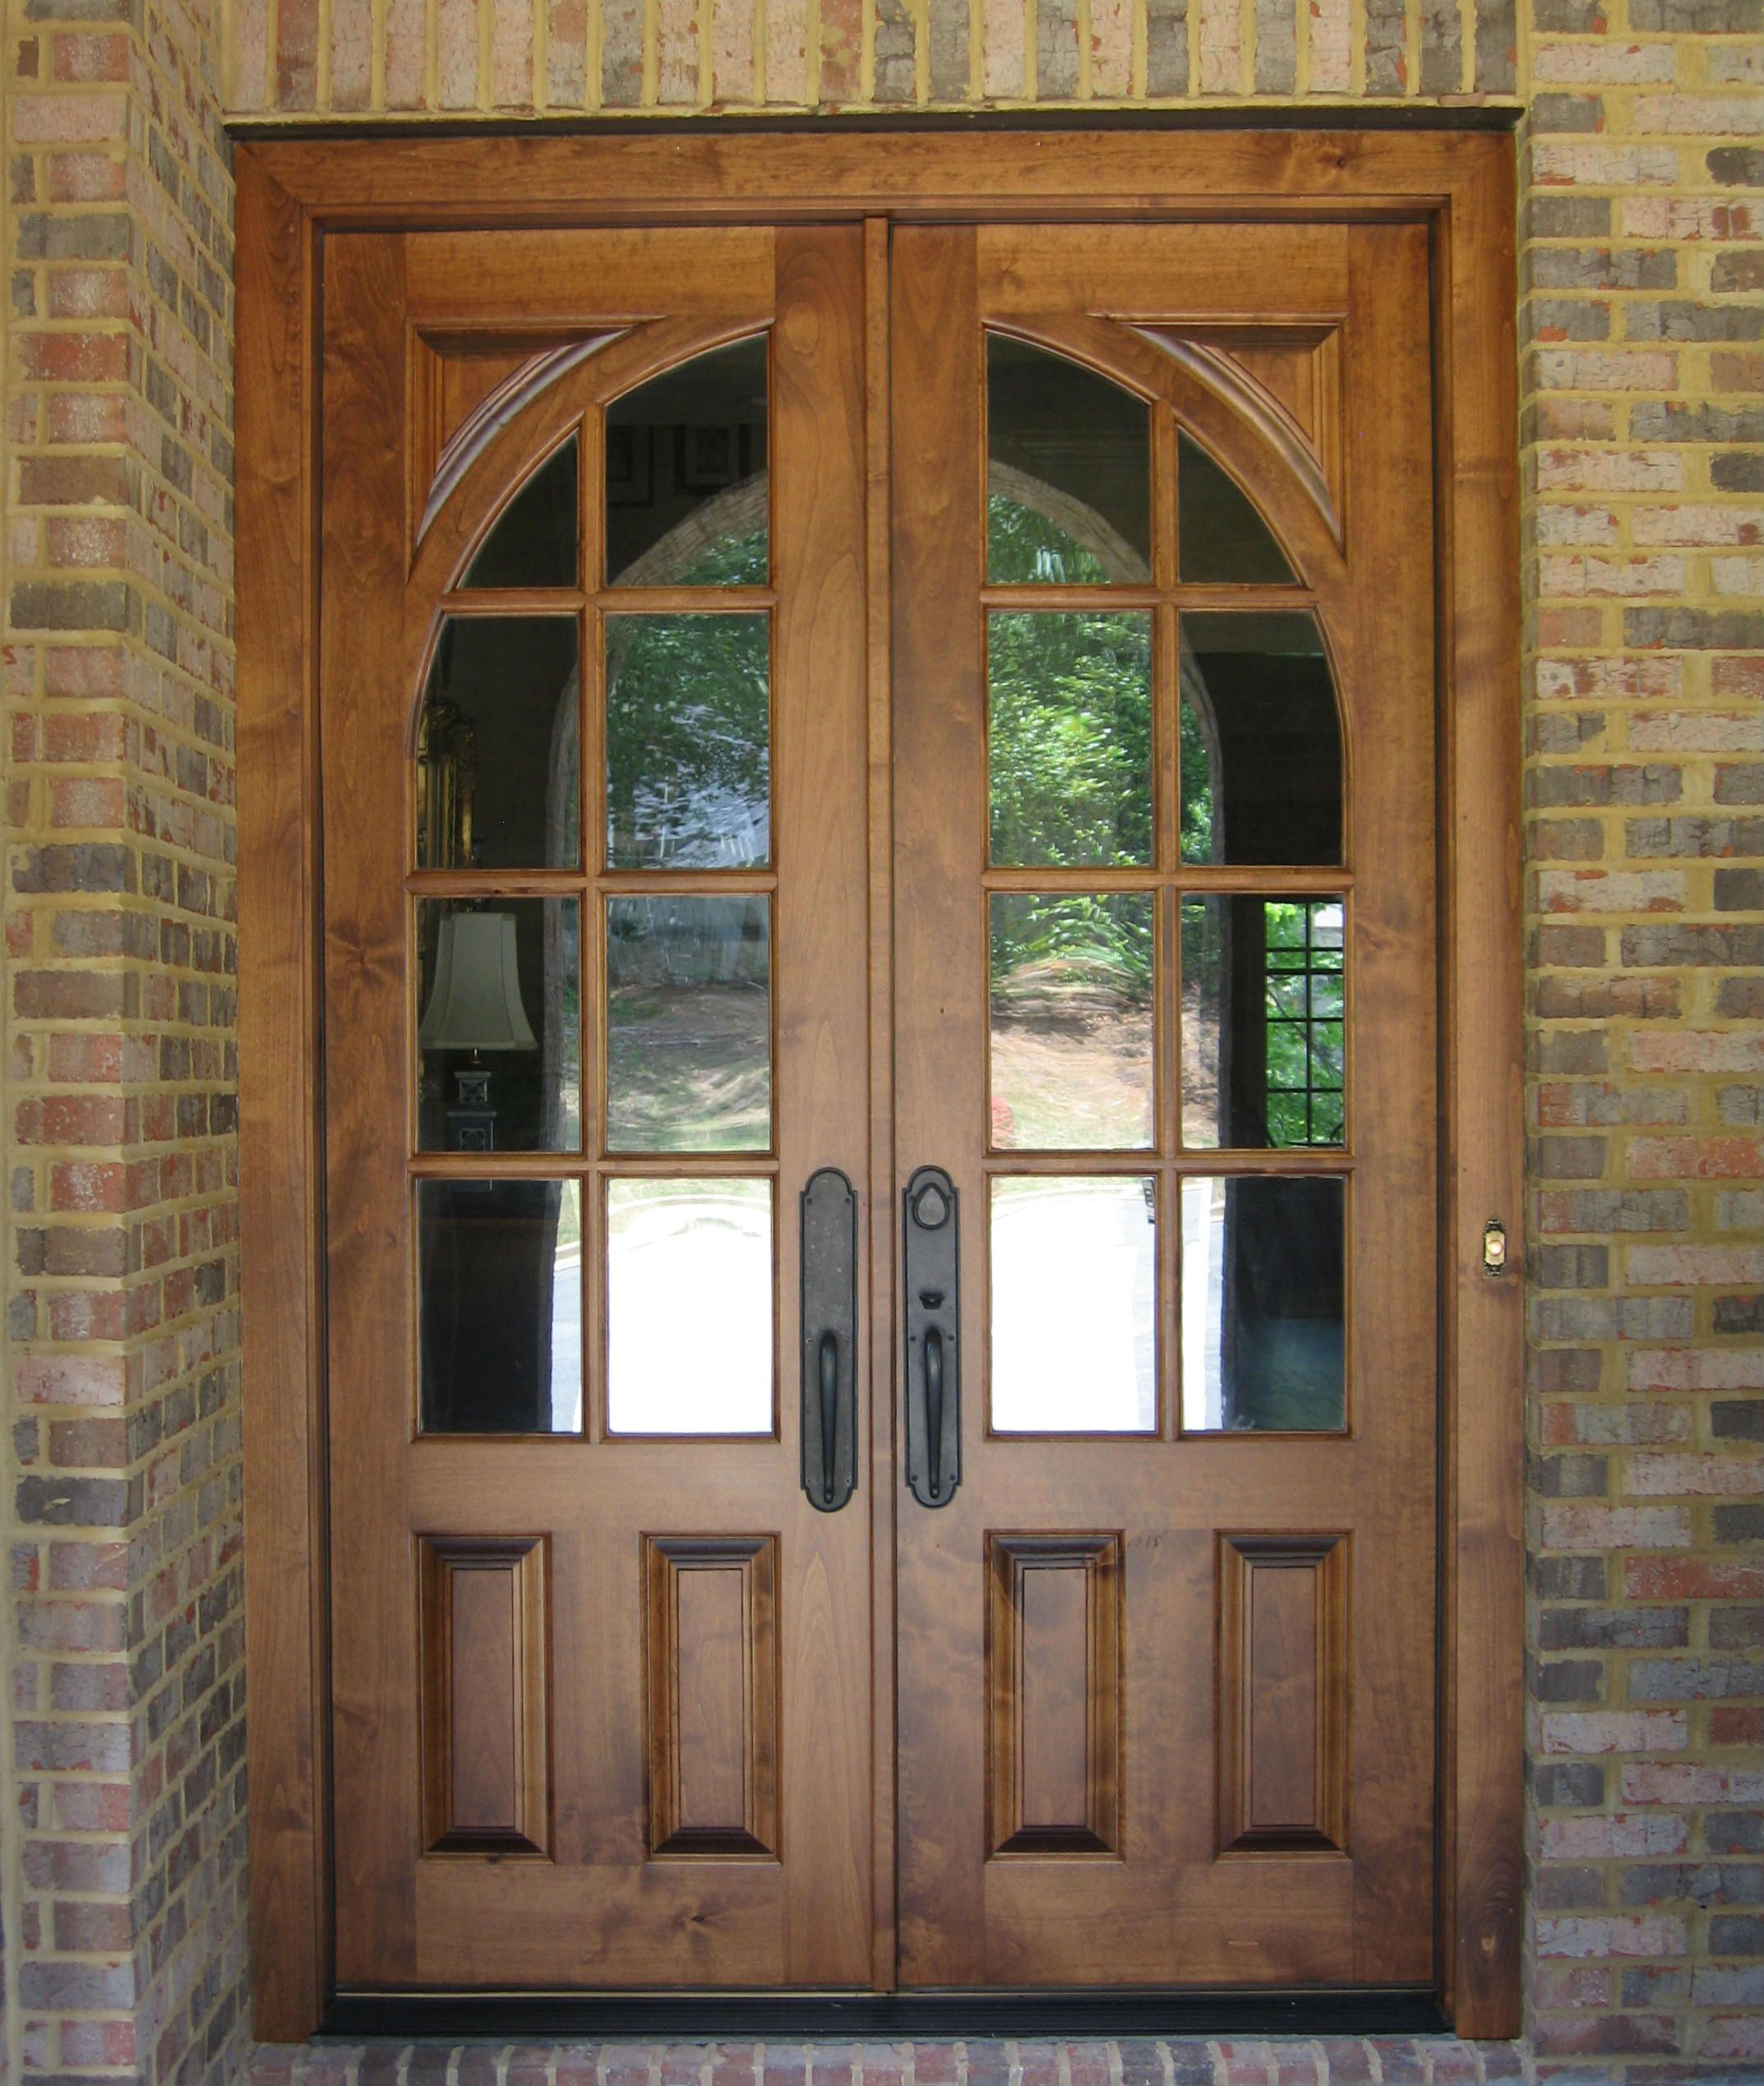 2538 #6E492E Front Entry Doors Wooden Front Doors Wood Entry Doors Glass Front Door  image Arched Wood Entry Doors 40832146